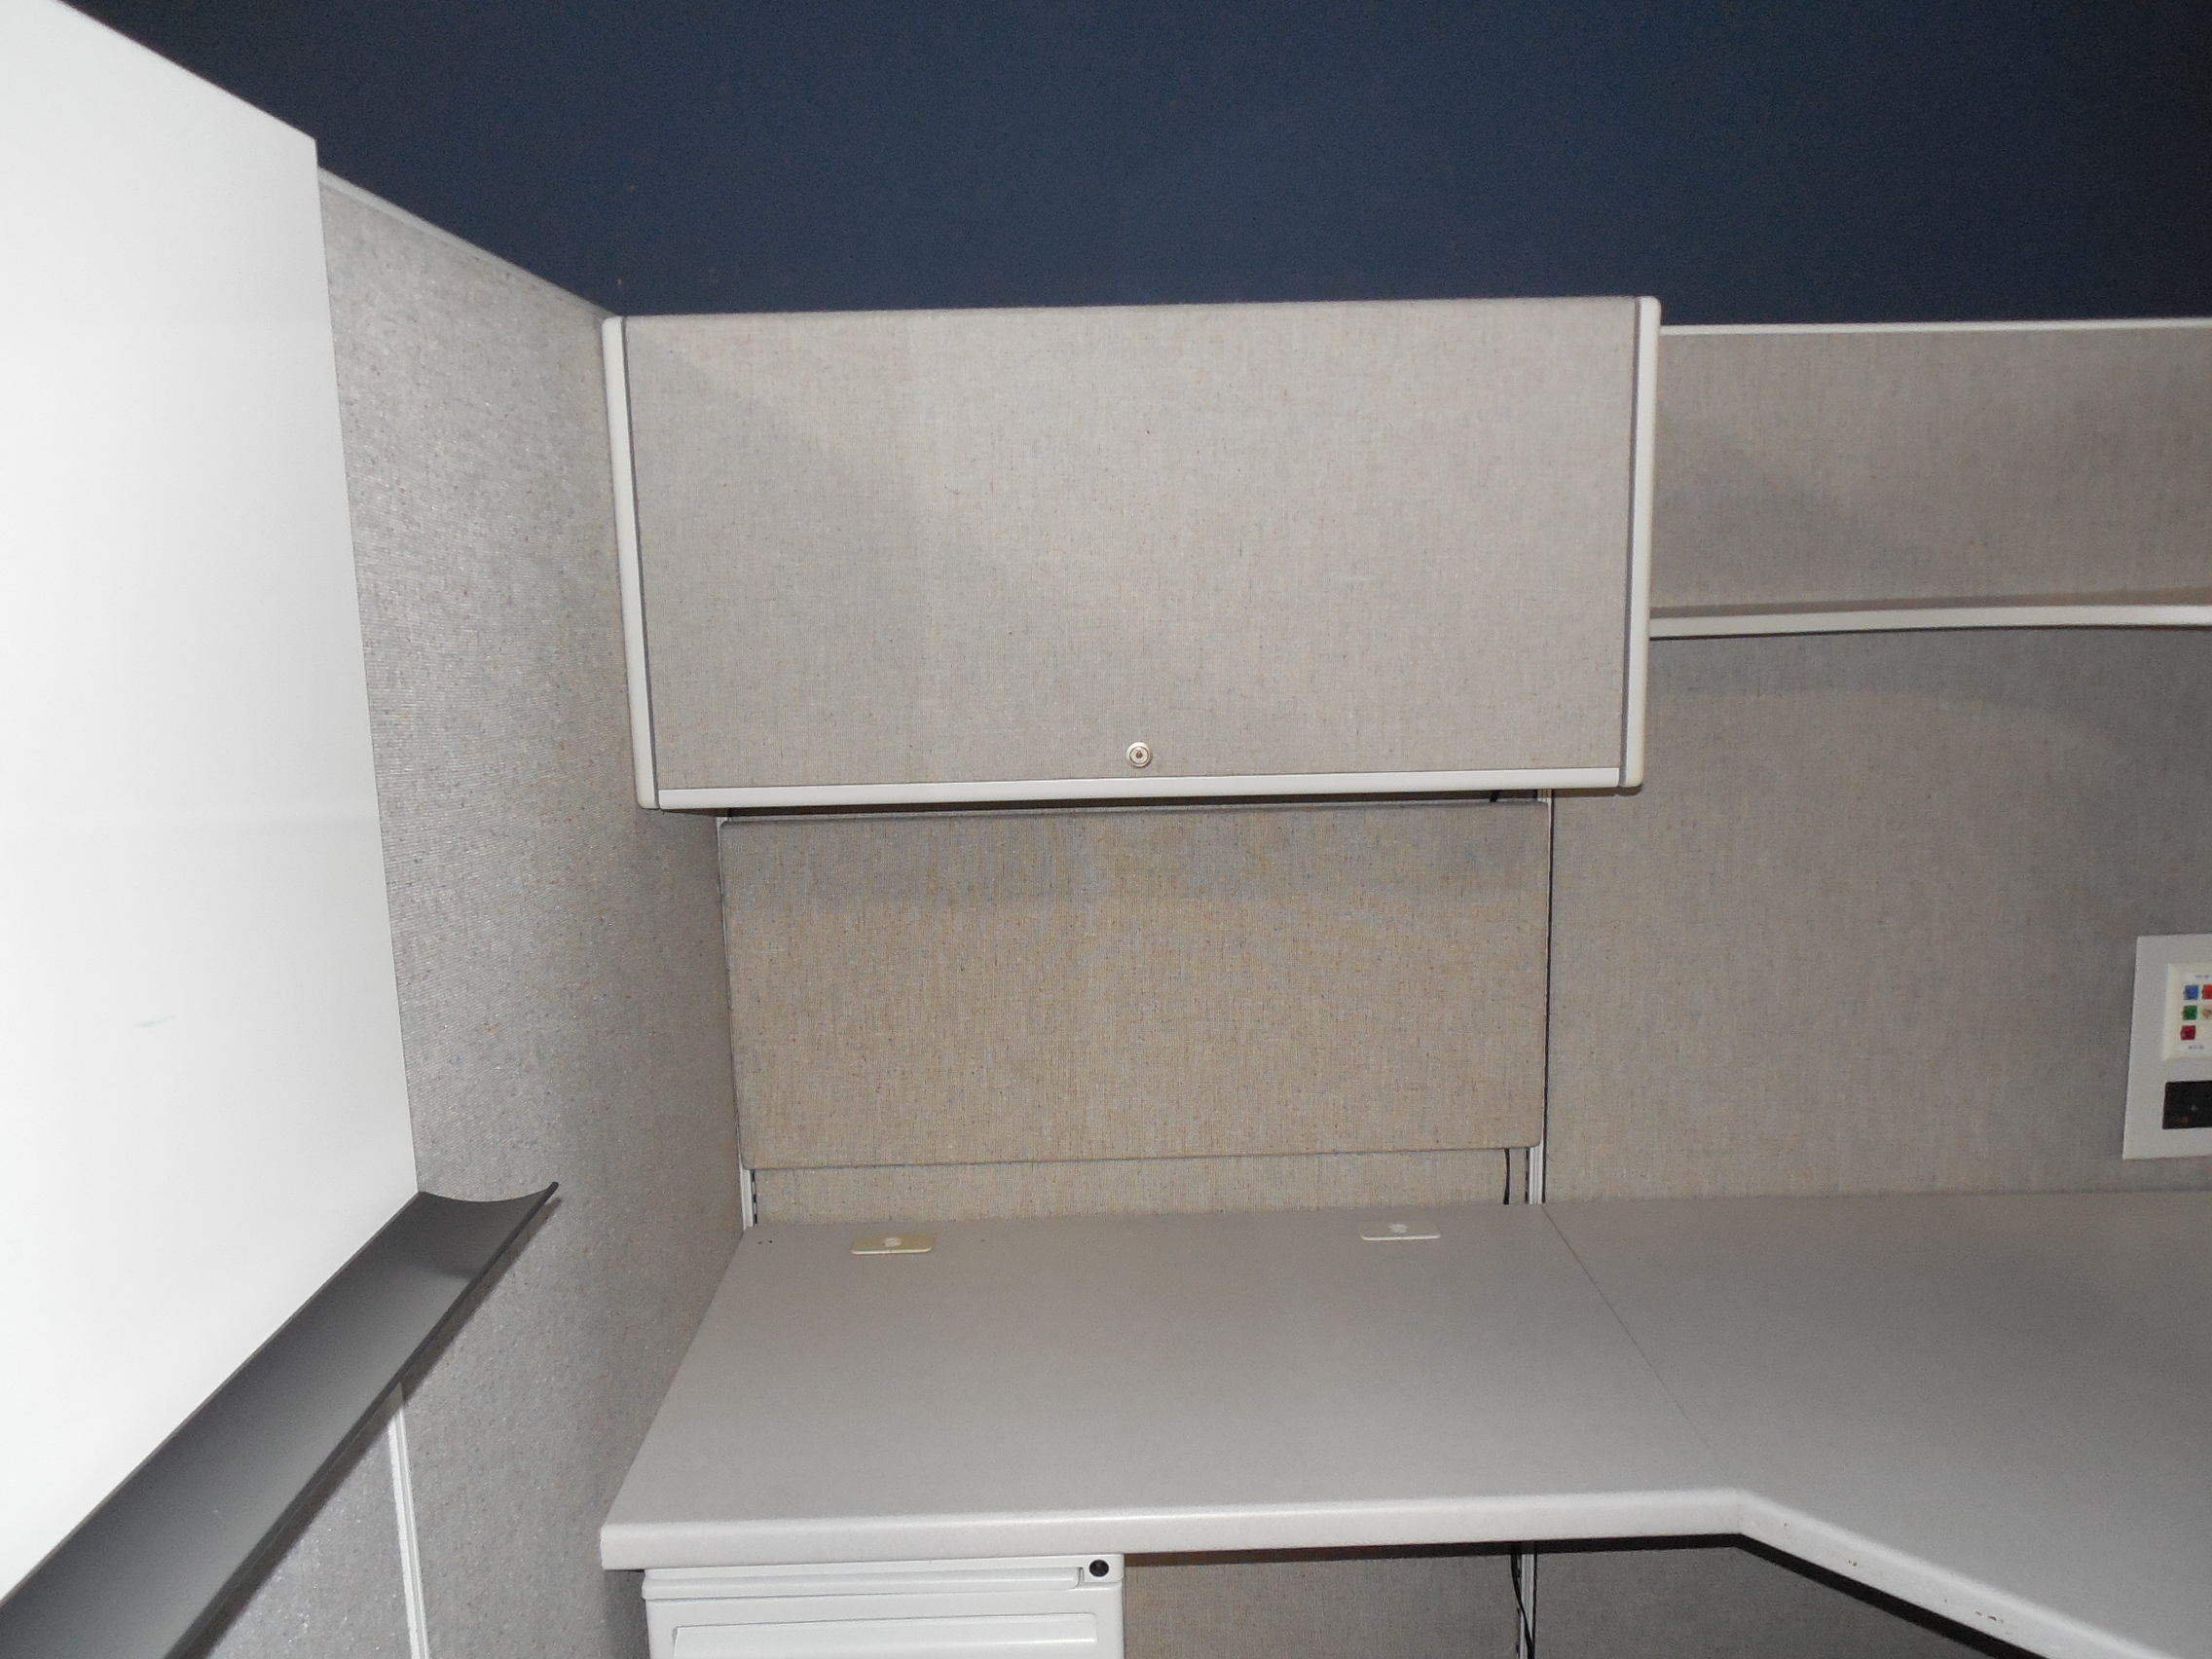 Haworth Places Cubicles in Dallas. 6X6